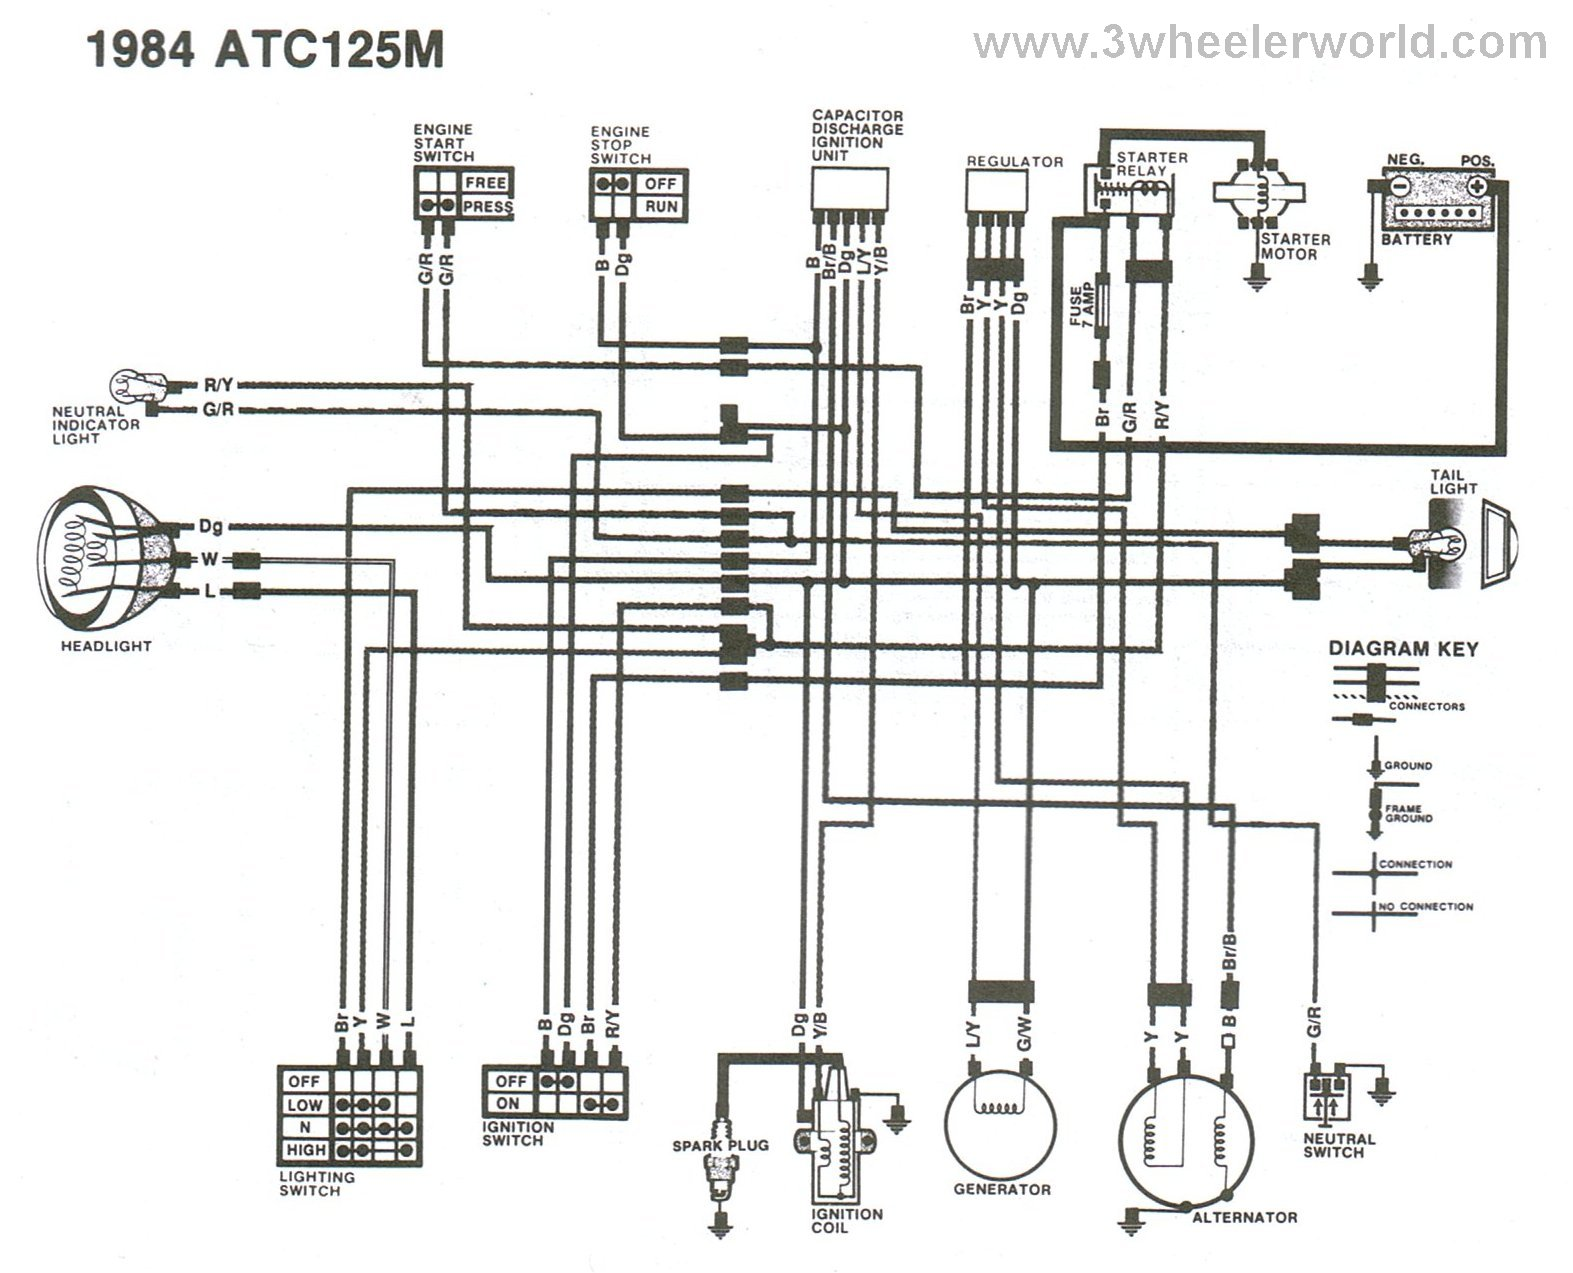 187 Honda Wiring Diagram Section on 02 Honda Civic Electrical Diagram